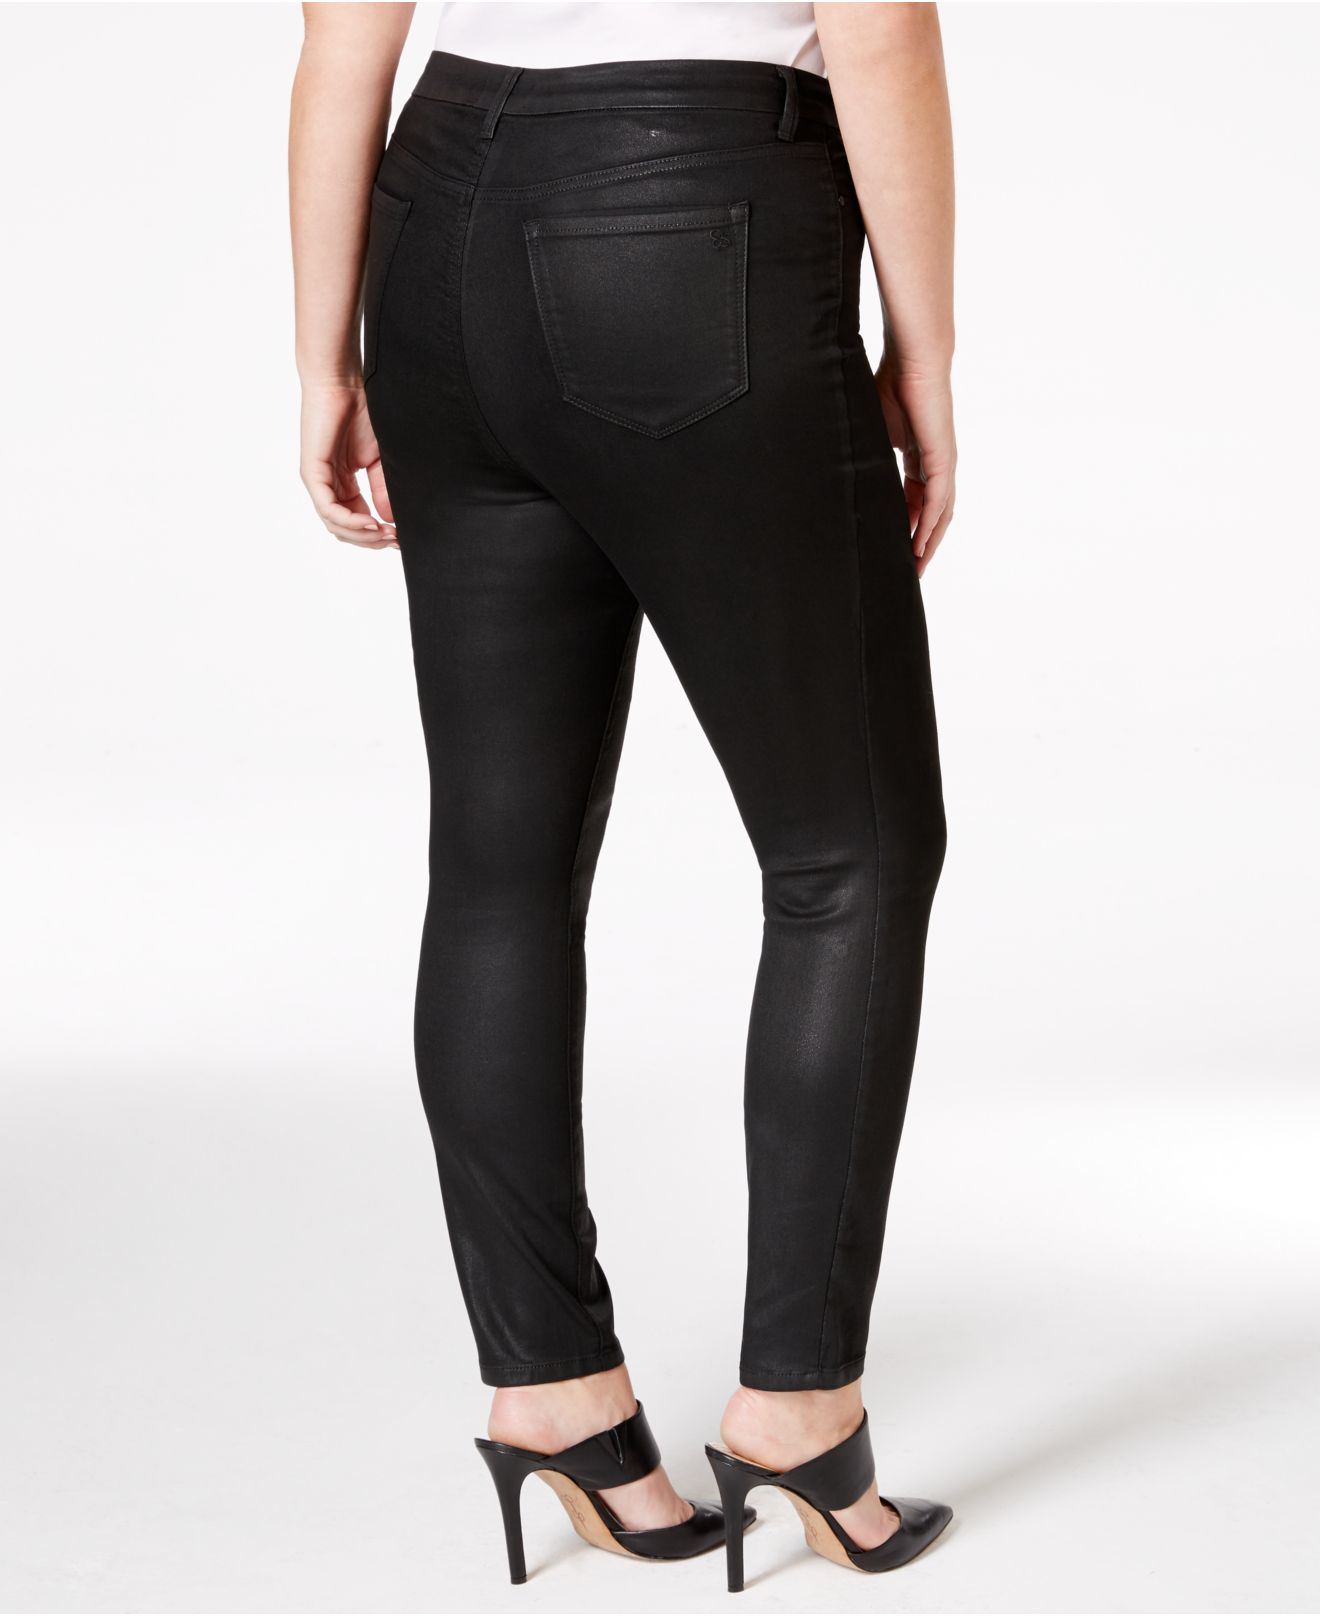 Look for plus size jeans in a variety of colors this fall including black jeans and white jeans, or really get noticed in a pair of green jeans or red jeans. You are sure to find a new pair of favorite jeans out of JCPenney's selection of plus size jeans for women.